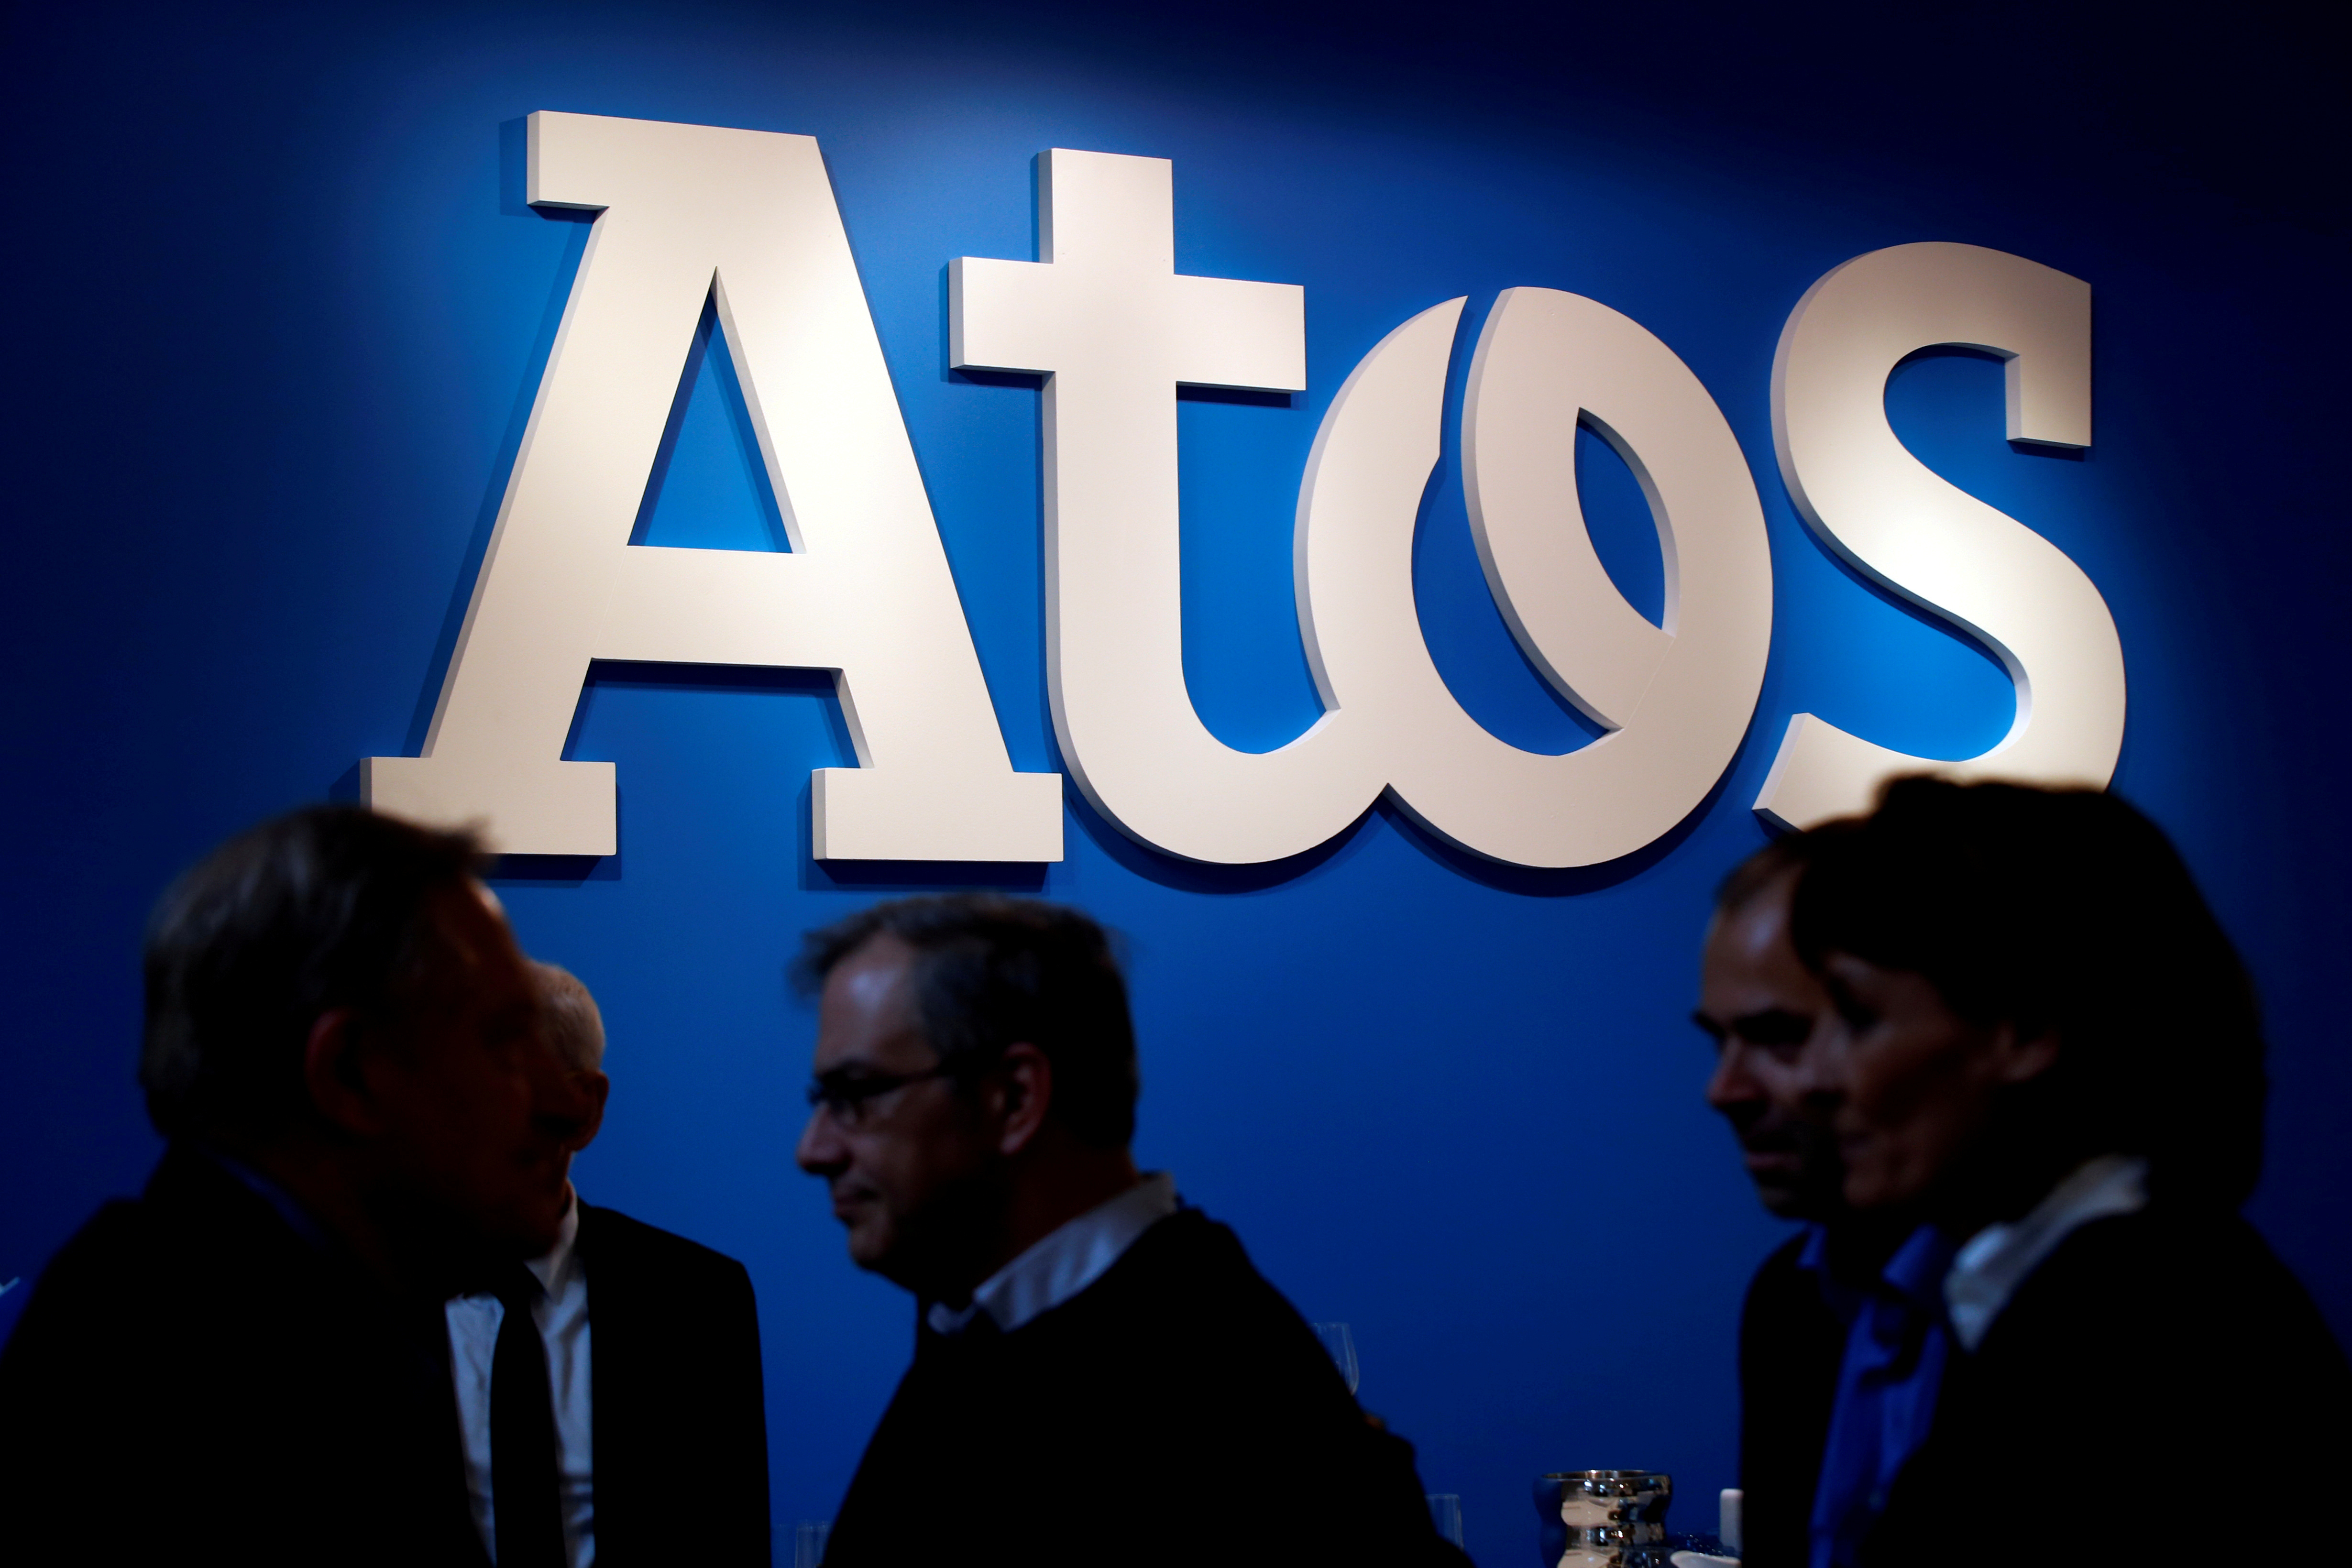 People walk in front of Atos company's logo during a presentation of the new Bull sequana supercomputer in Paris, France, April 12, 2016. REUTERS/Philippe Wojazer